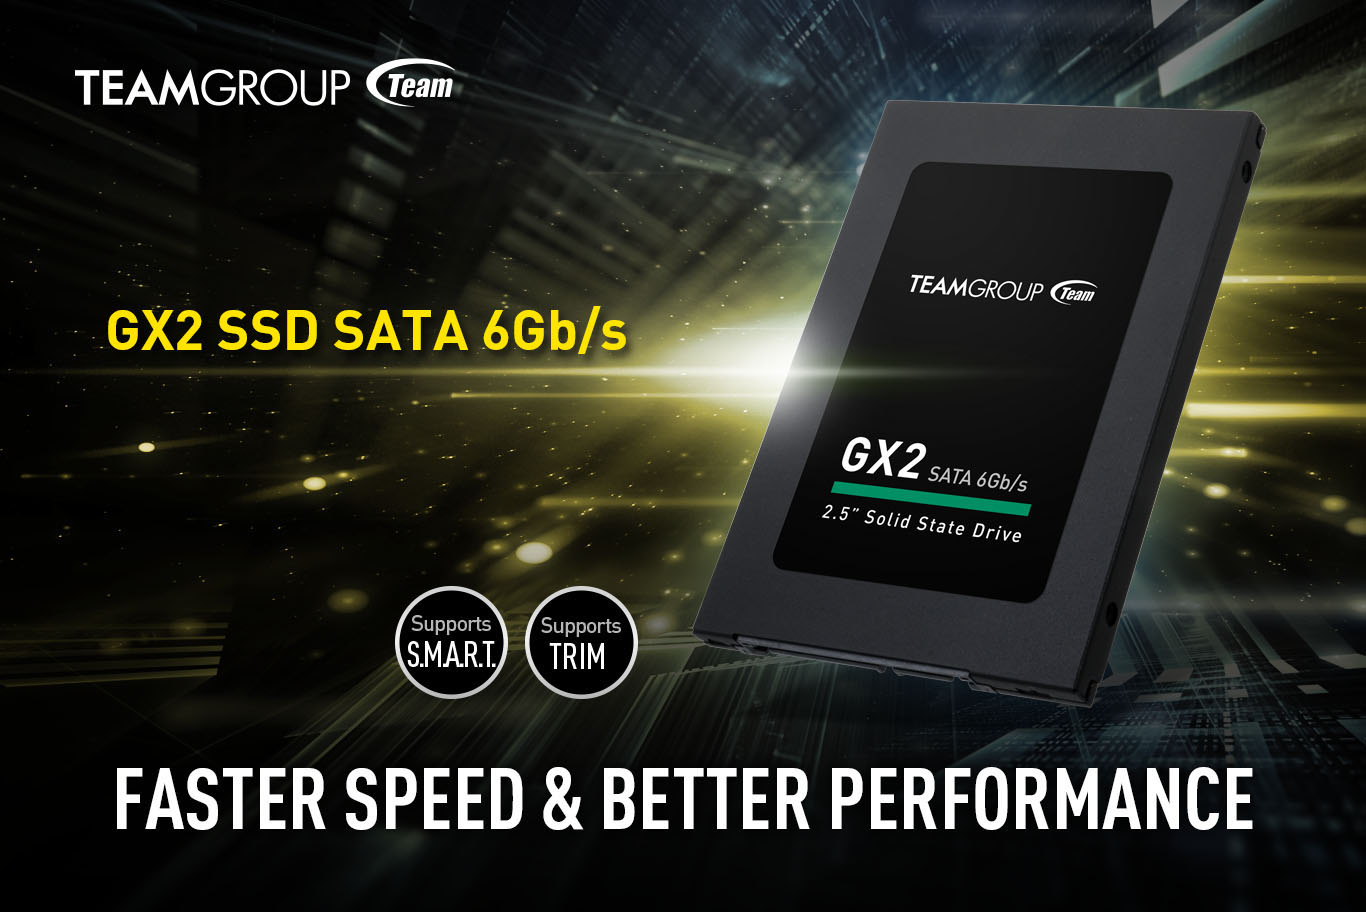 Team Group GX2 SSD SATA 6Gb/s banner showing the SSD standing up facing to the left, with text that reads: Supports S.M.A.R.T. and Supports TRIM - Faster Speed & Better Performance